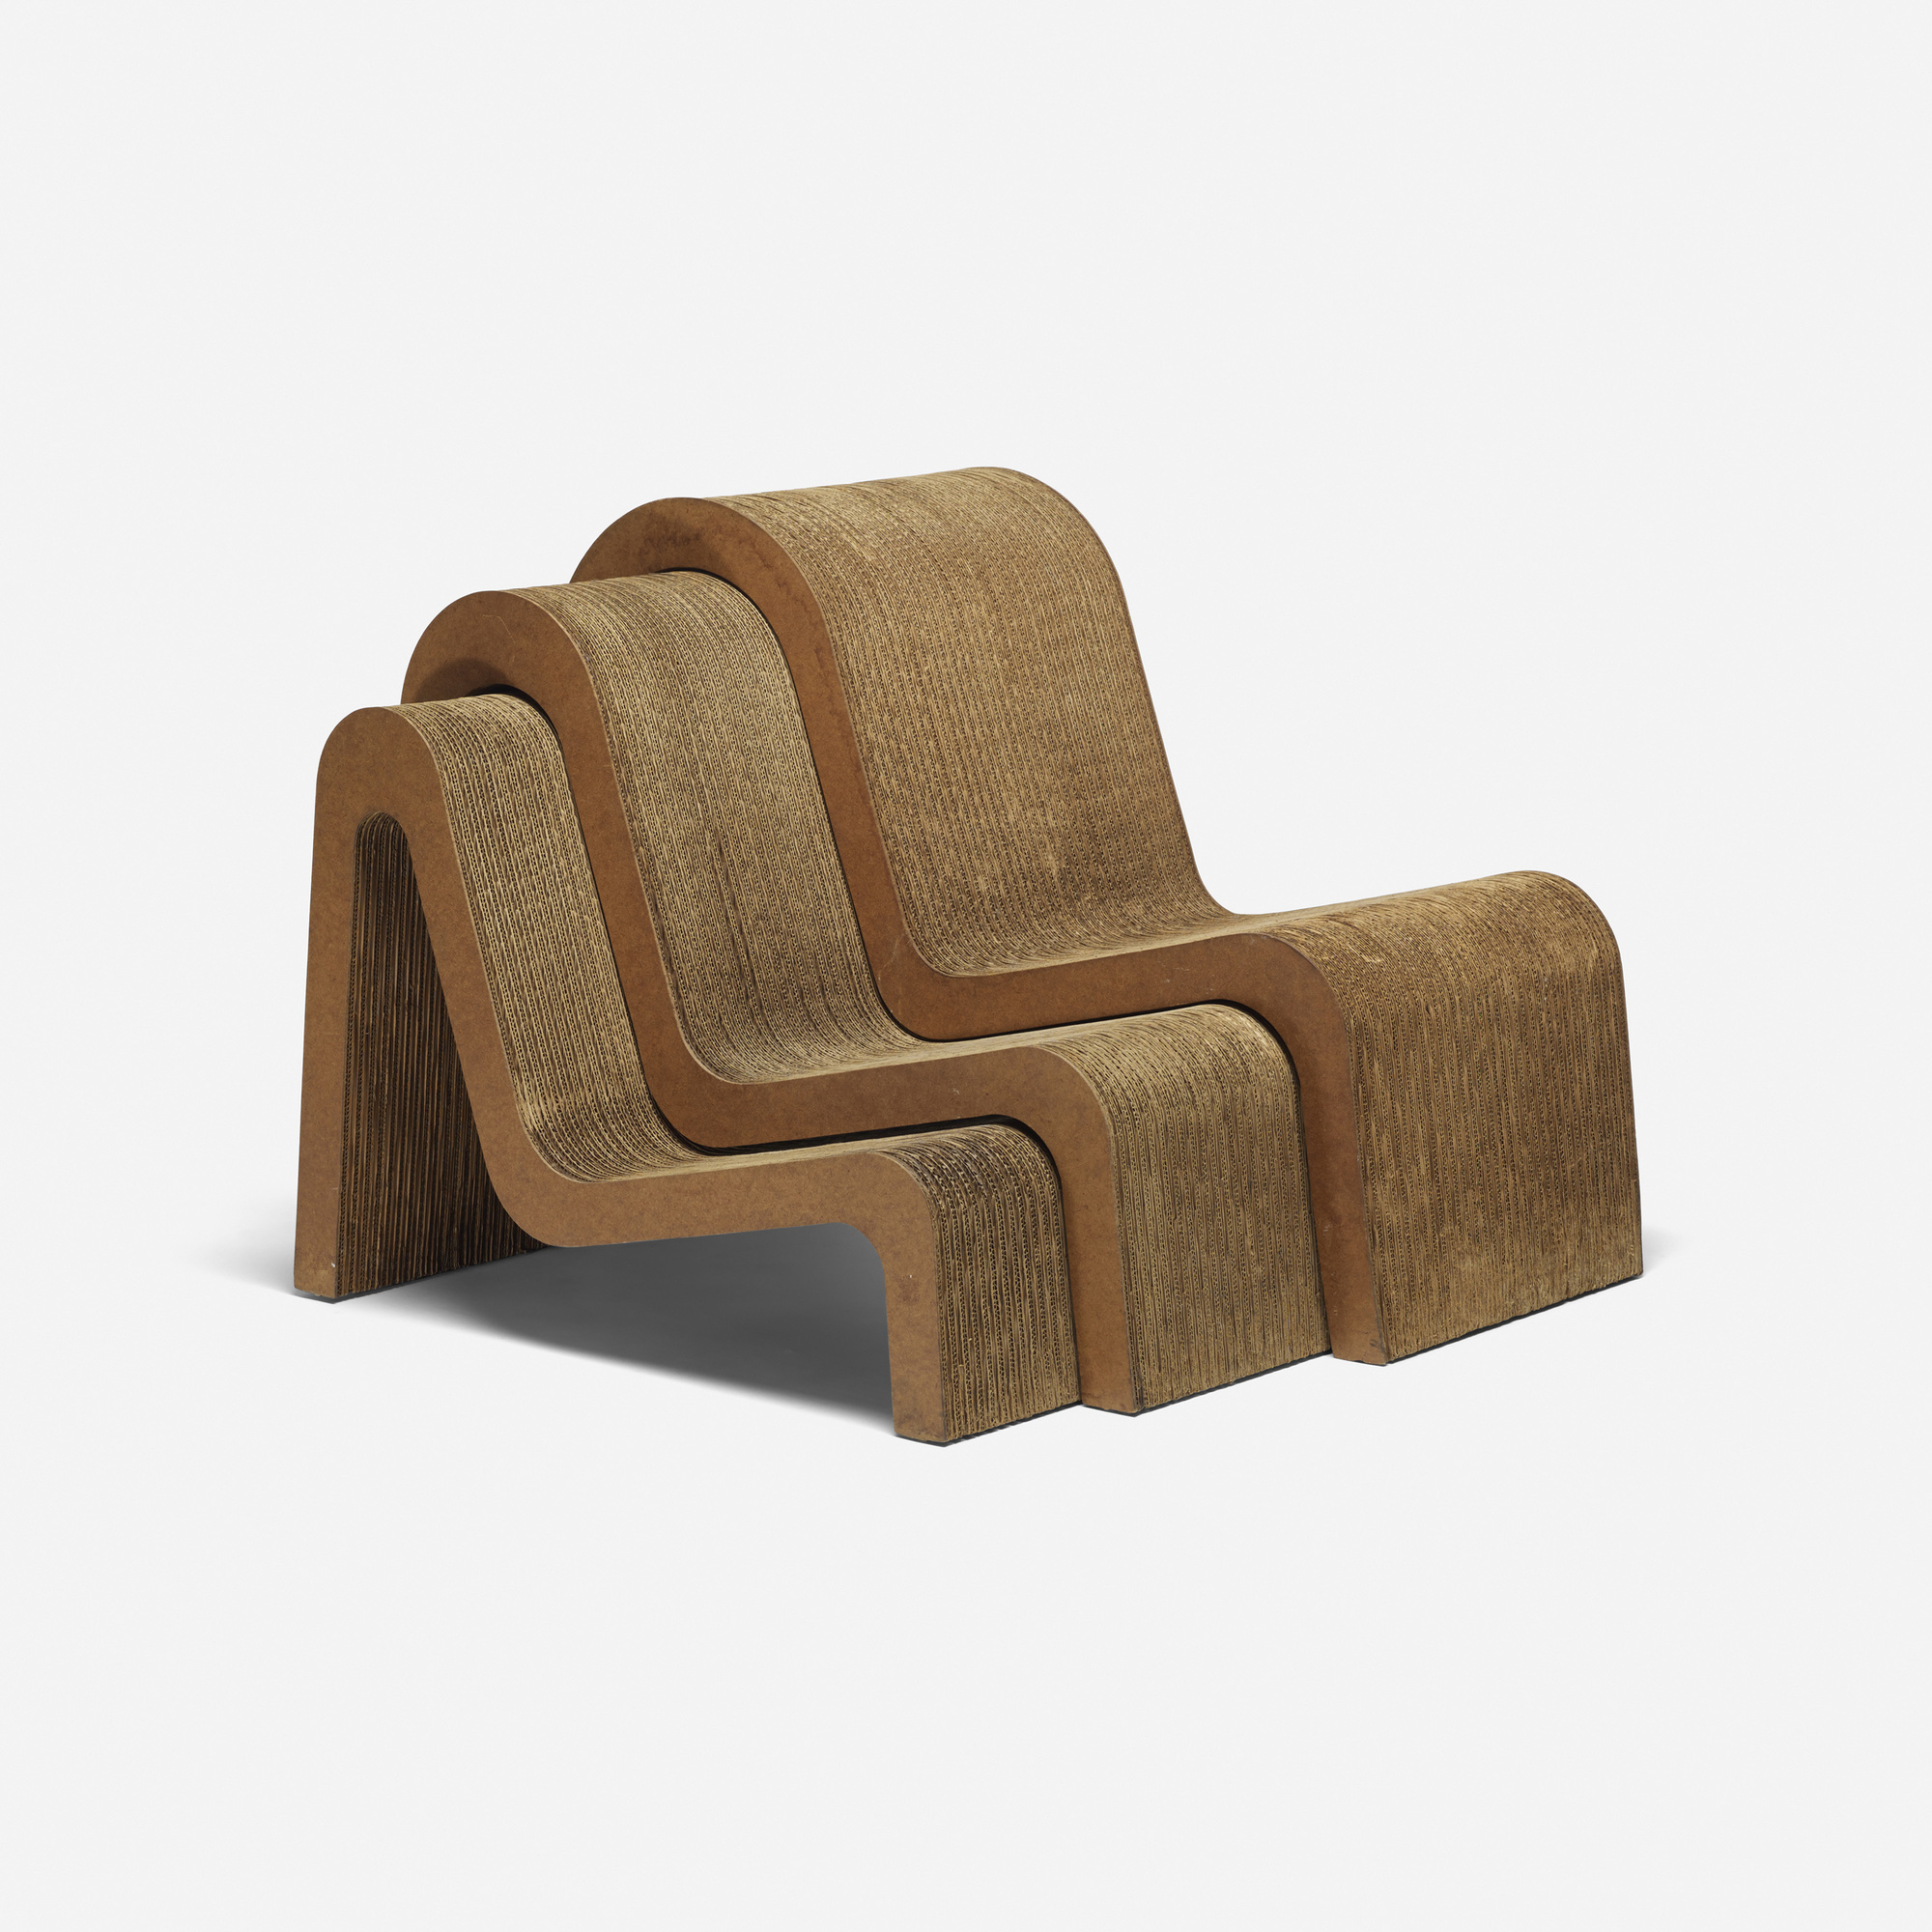 Frank Gehry Nesting Chairs Set Of Three Design - Frank gehry furniture